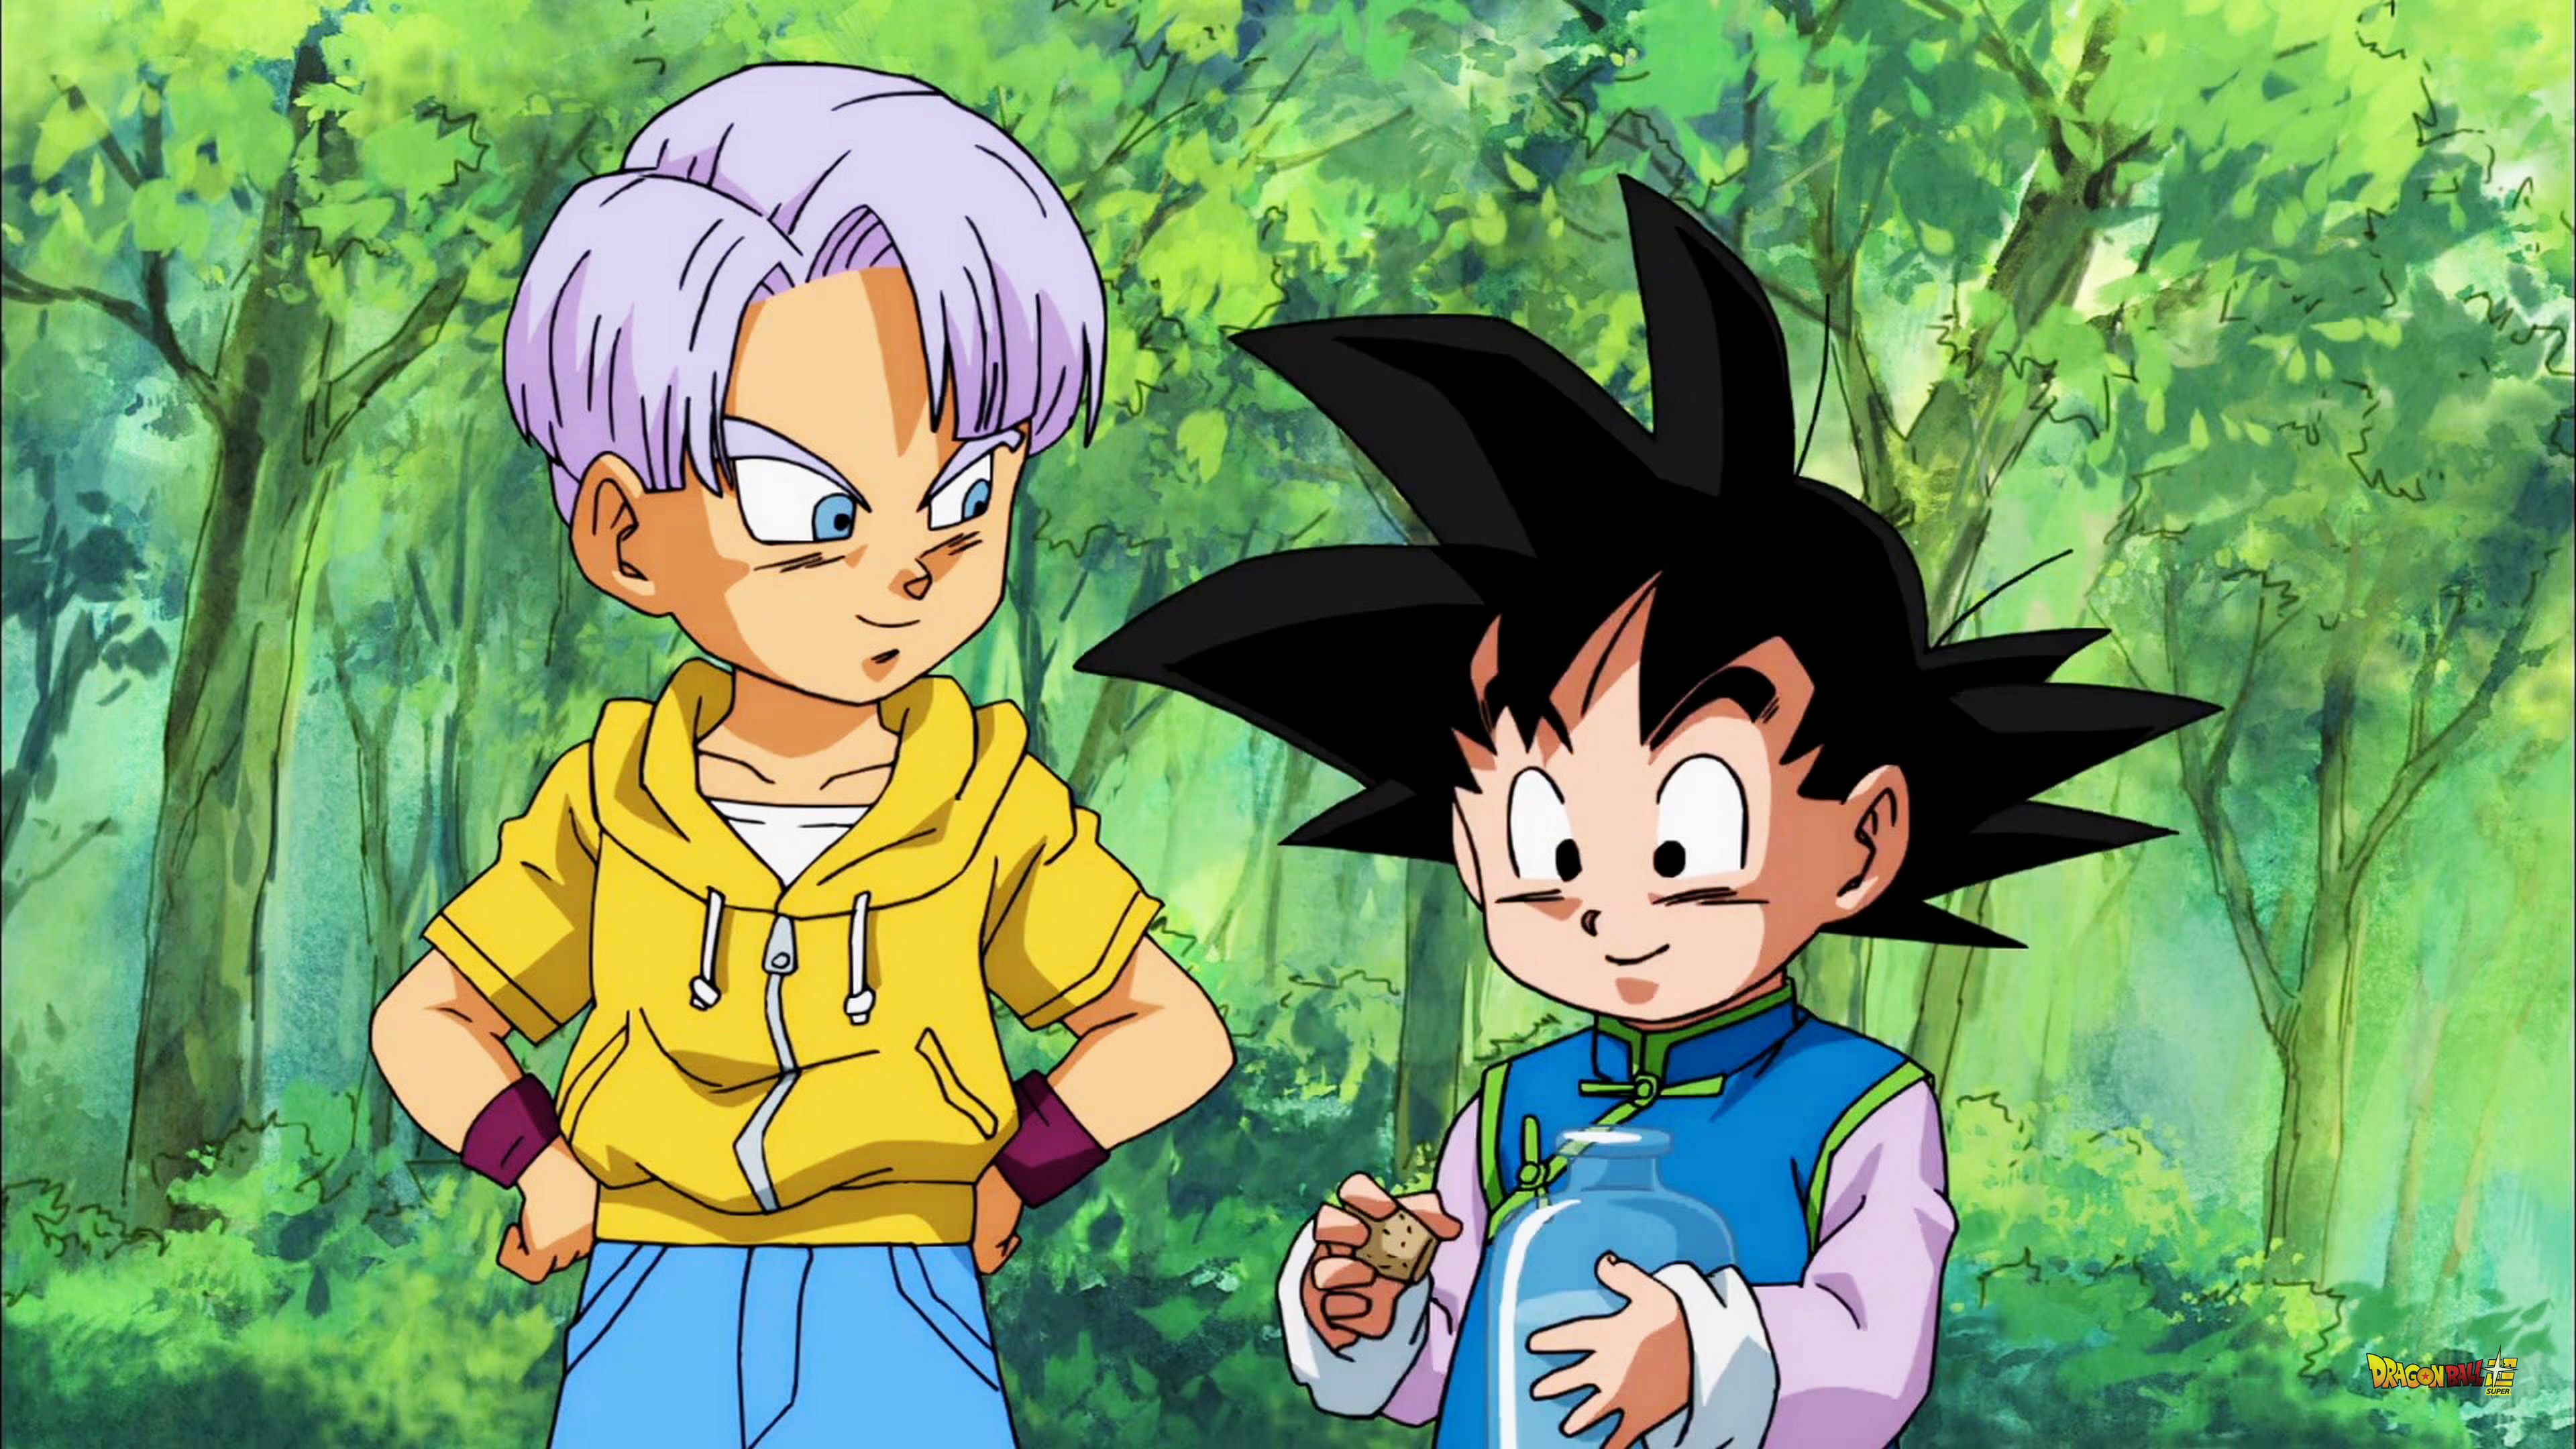 Dragon Ball Super Season 1 Episode 1 S01E01 4k uHD Wallpapers 25 Goku works in his radish field, but wants to go training and fighting.